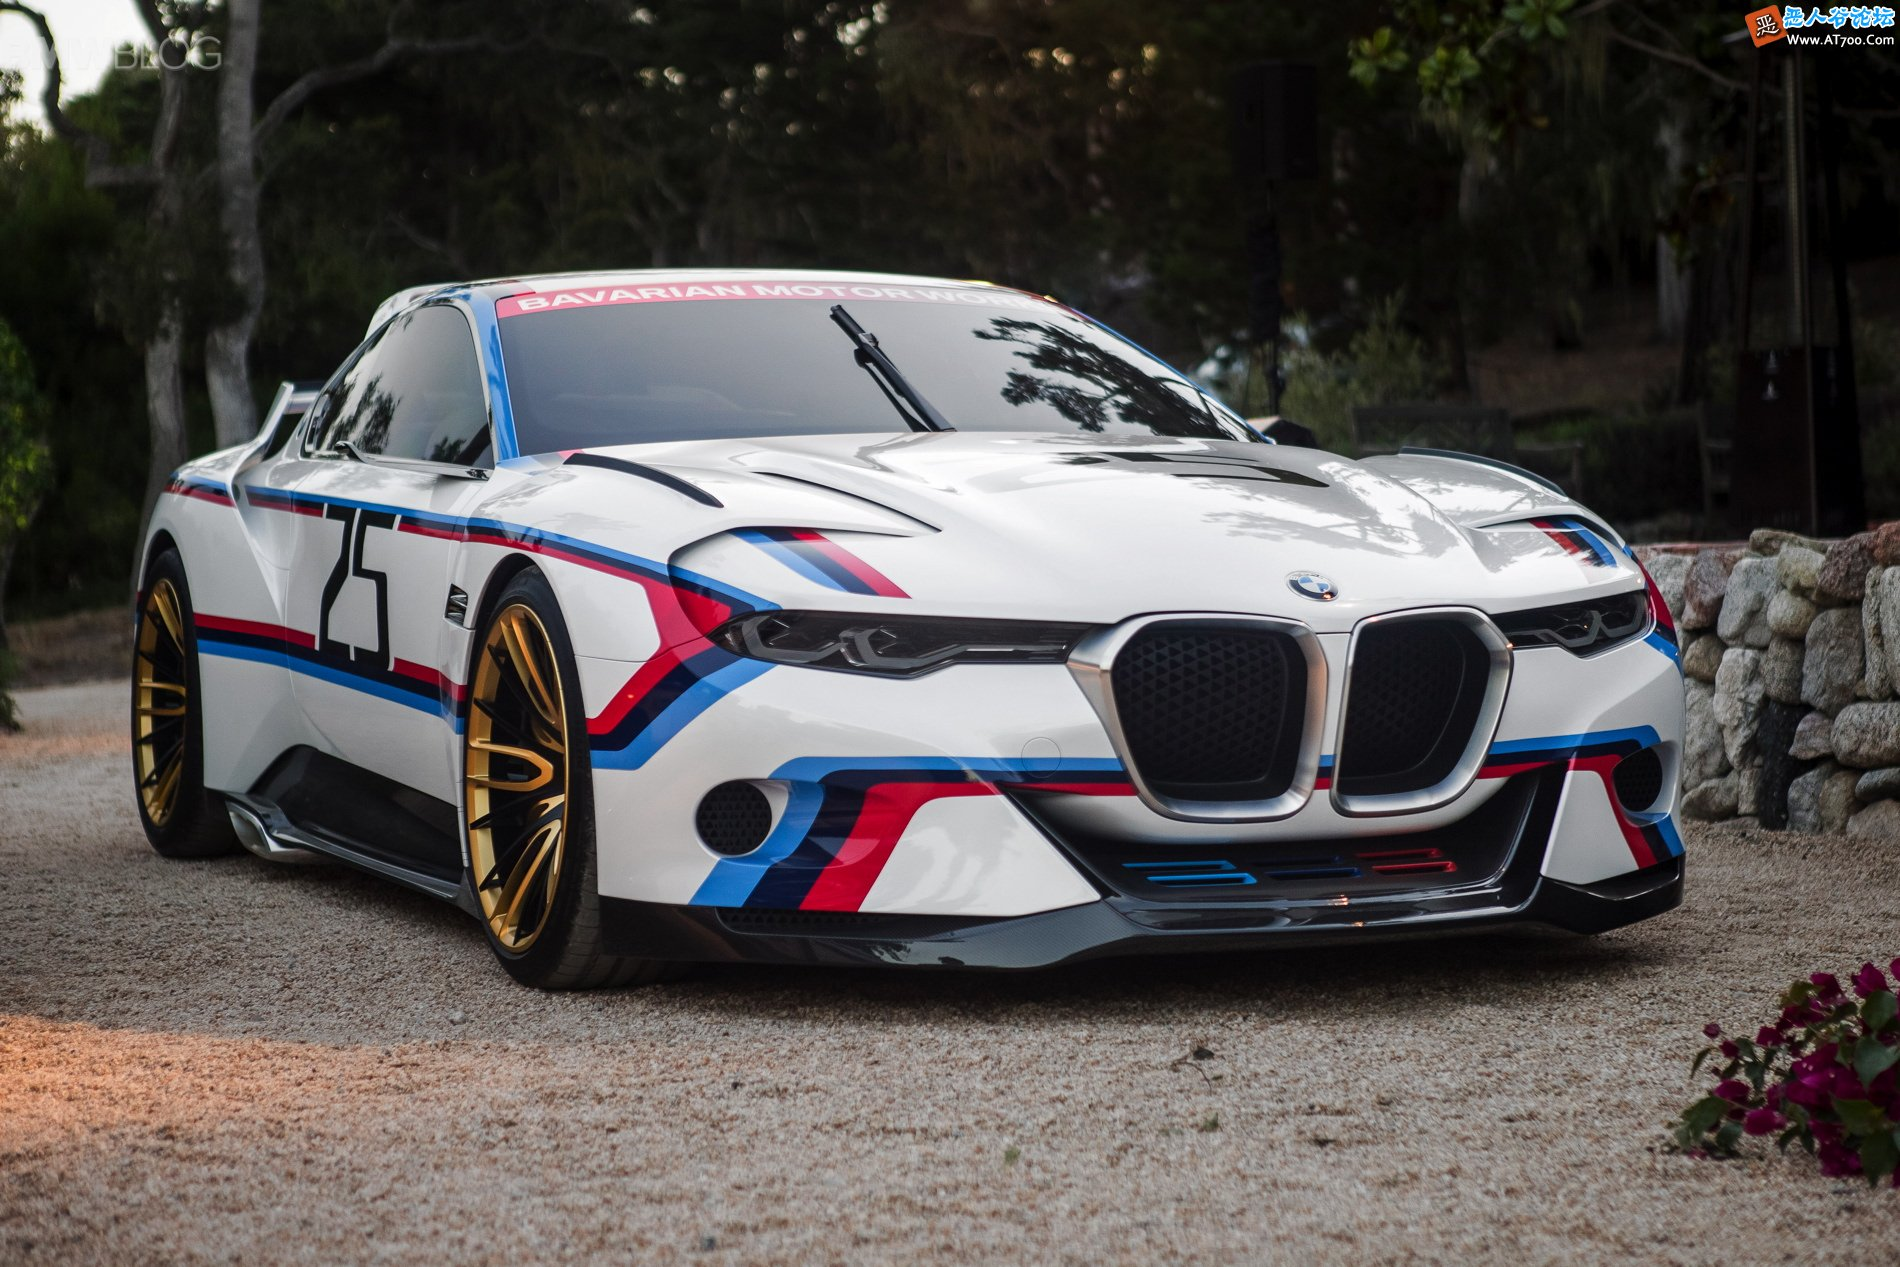 BMW-3.0-CSL-Hommage-Racing-Pebble-Beach-images-12.jpg